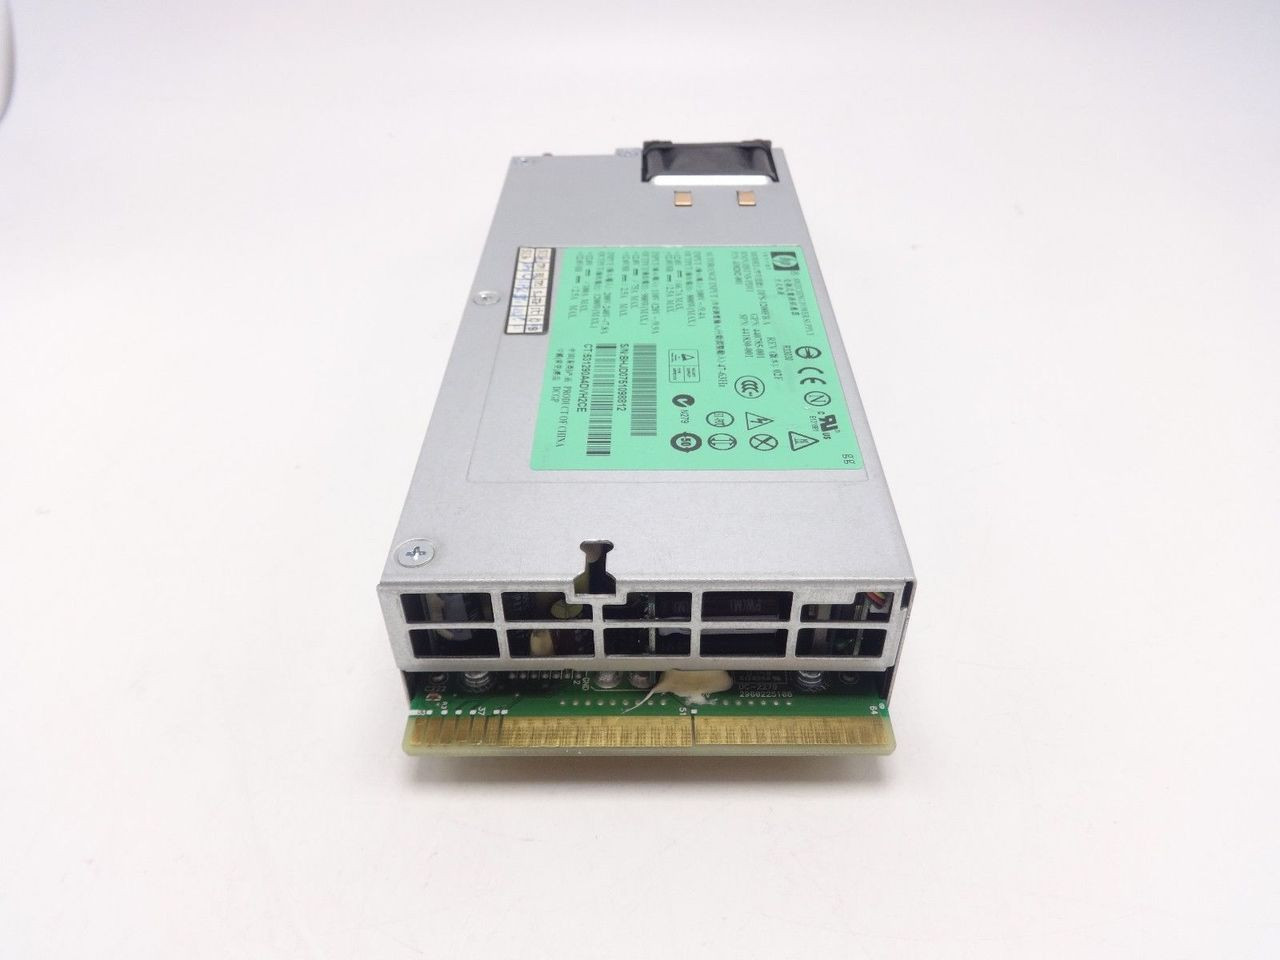 HP 441830-001 DL580 G5 Power Supply 1200W DPS-120FB A 440785-001 438202-001